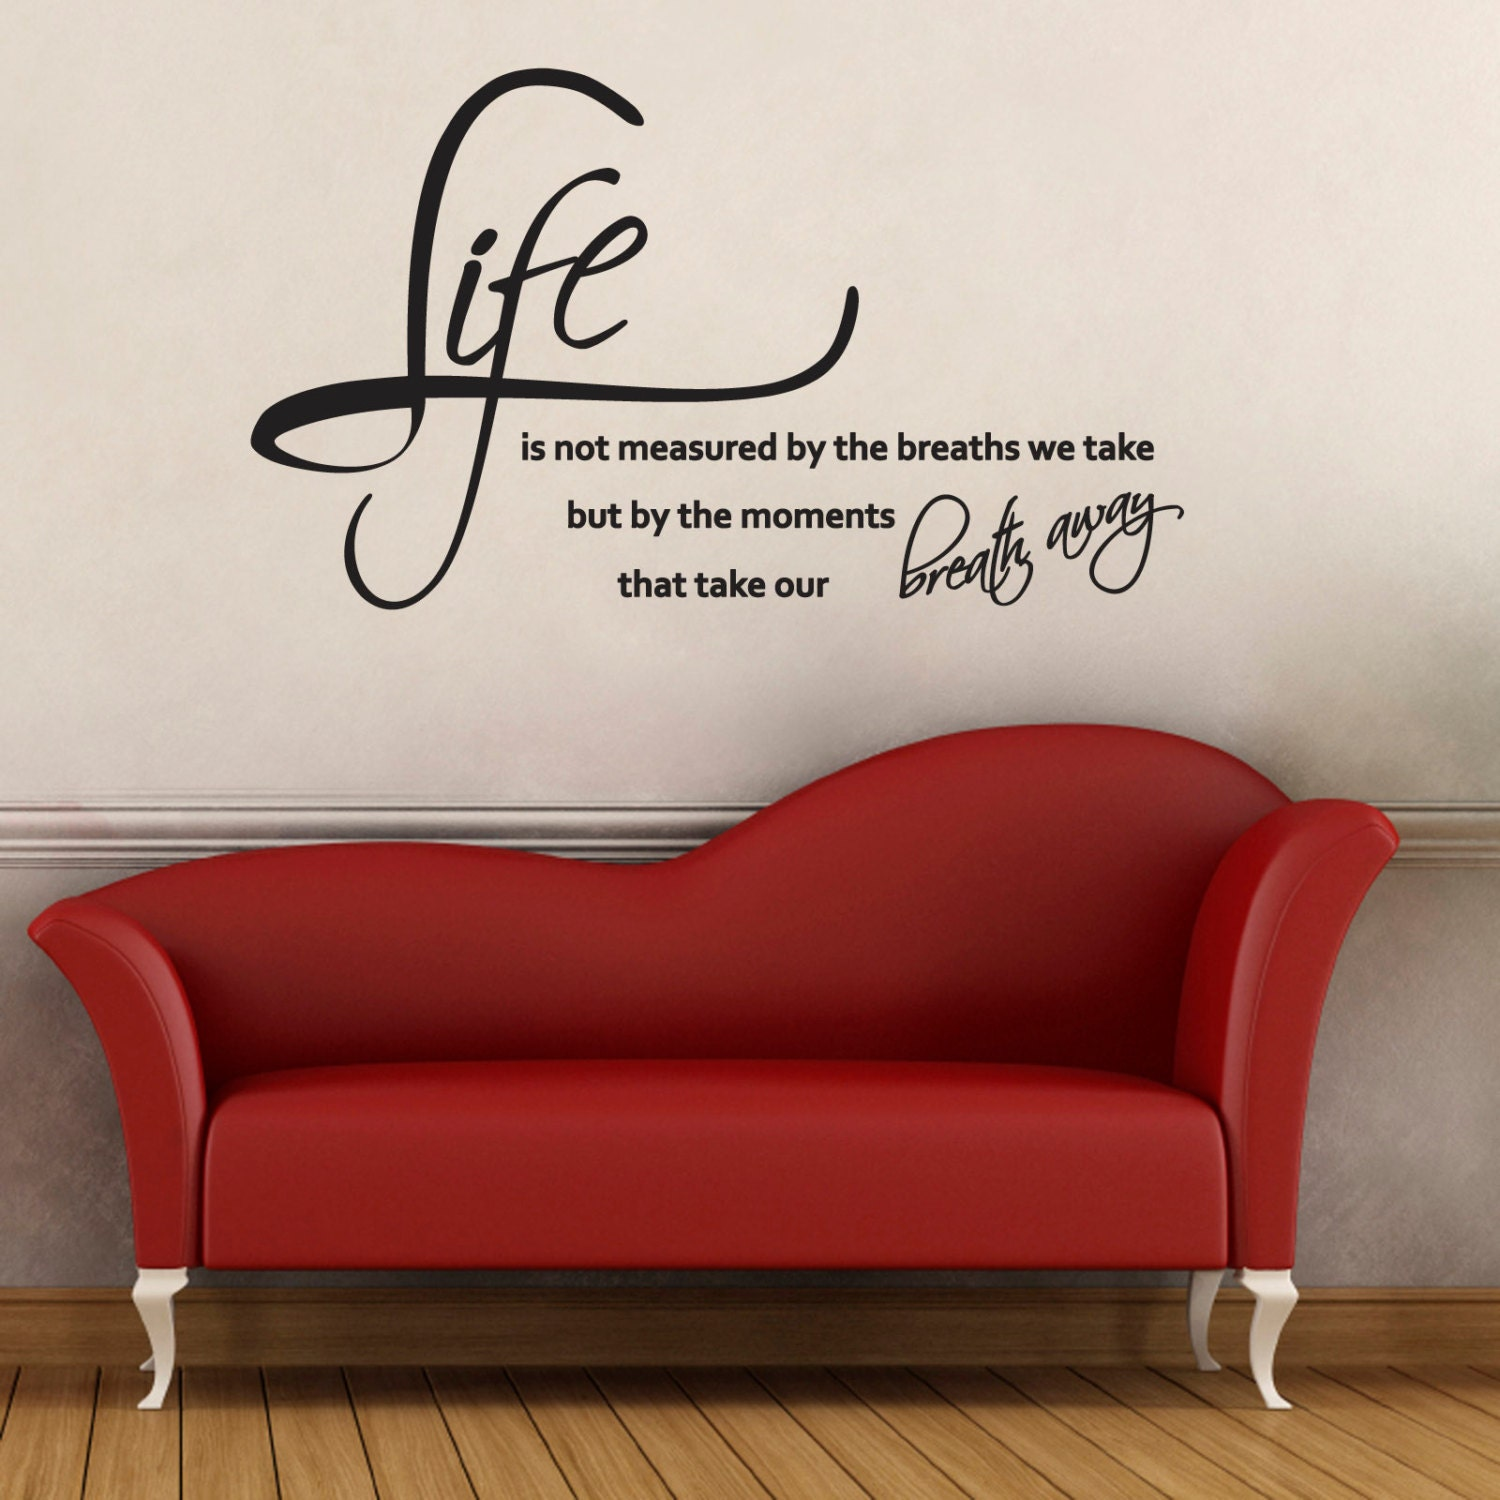 Life Is Not Measured By The Breaths Quote: Life Is Not Measured By The Breaths We Take Quote Wall Decal